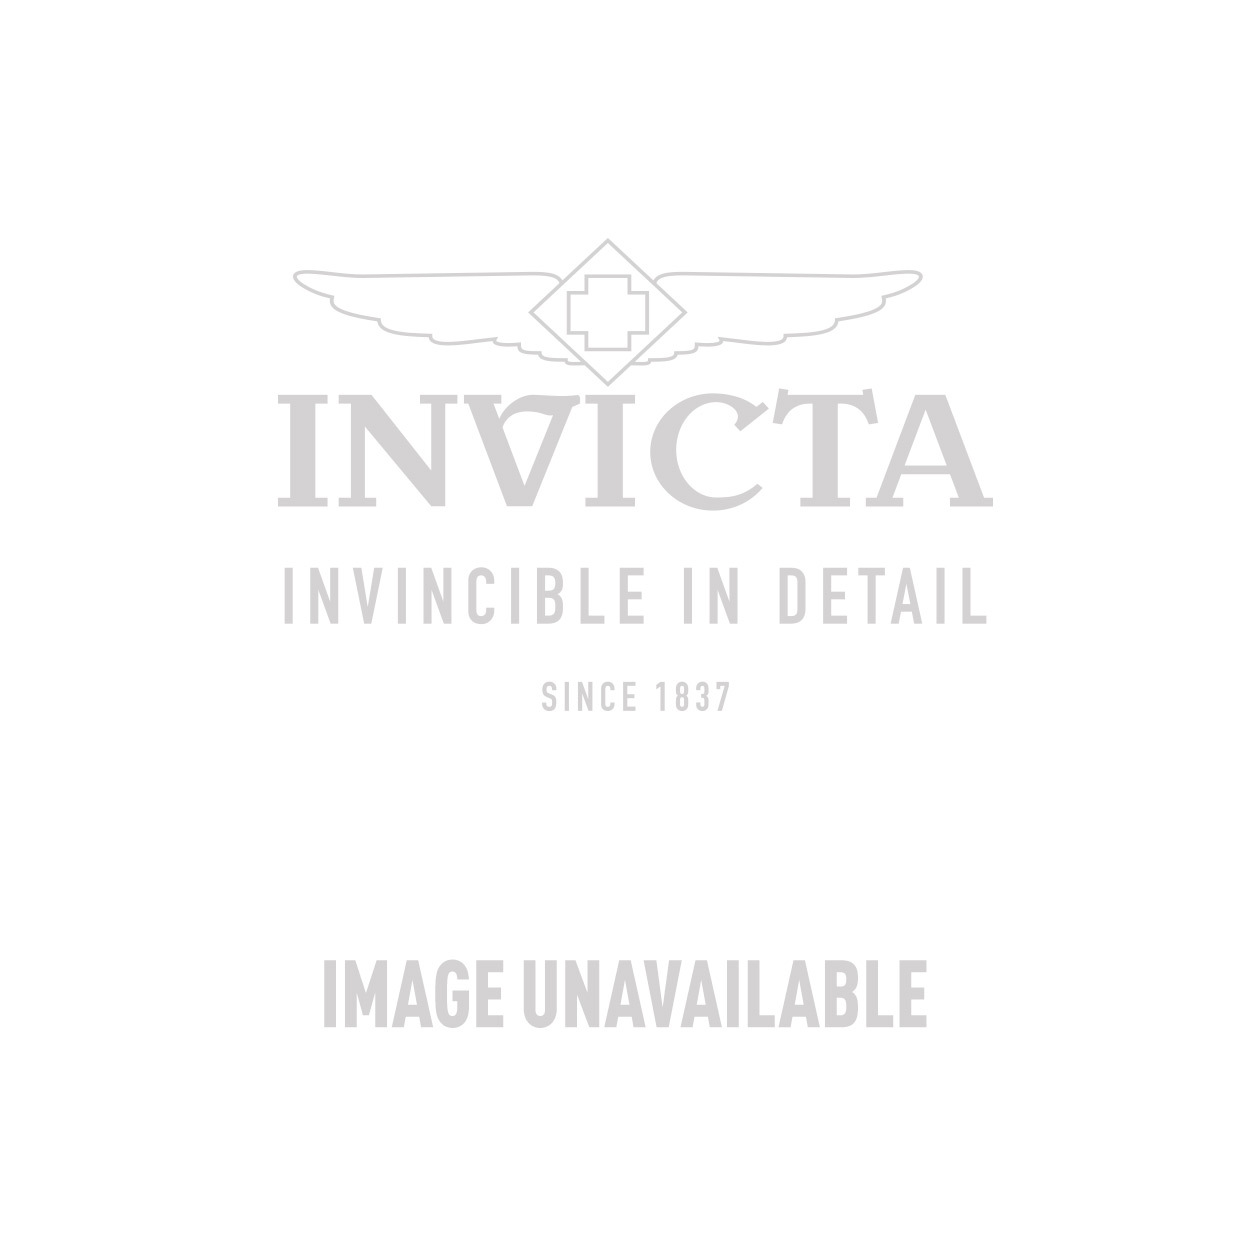 Invicta Bolt Swiss Made Quartz Watch - Gold, Stainless Steel case with Steel, Gold, Black tone Stainless Steel, Polyurethane band - Model 16317